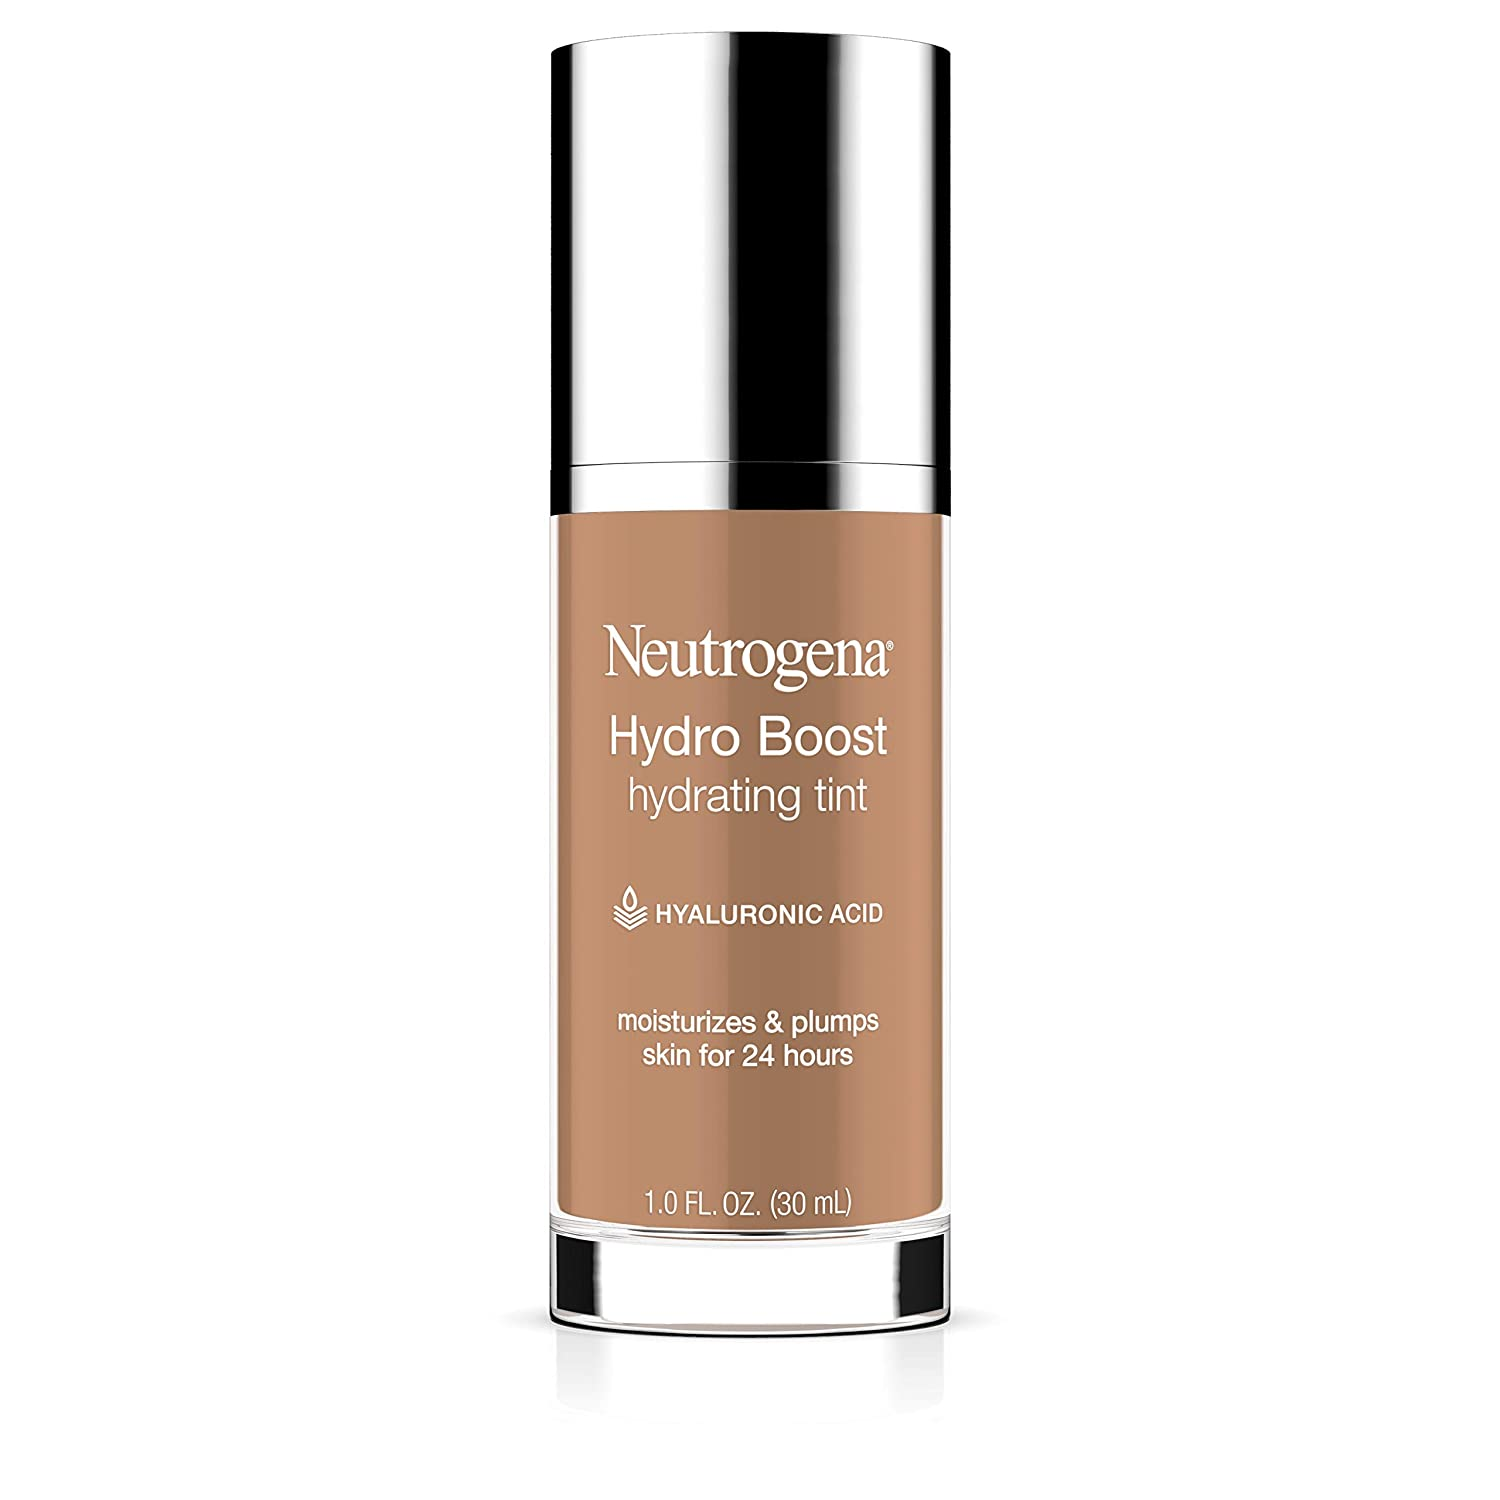 Neutrogena Hydro Boost Hydrating Tint with Hyaluronic Acid, Lightweight Water Gel Formula, Moisturizing, Oil-Free & Non-Comedogenic Liquid Foundation Makeup, 115 Cocoa Color 1.0 fl. oz